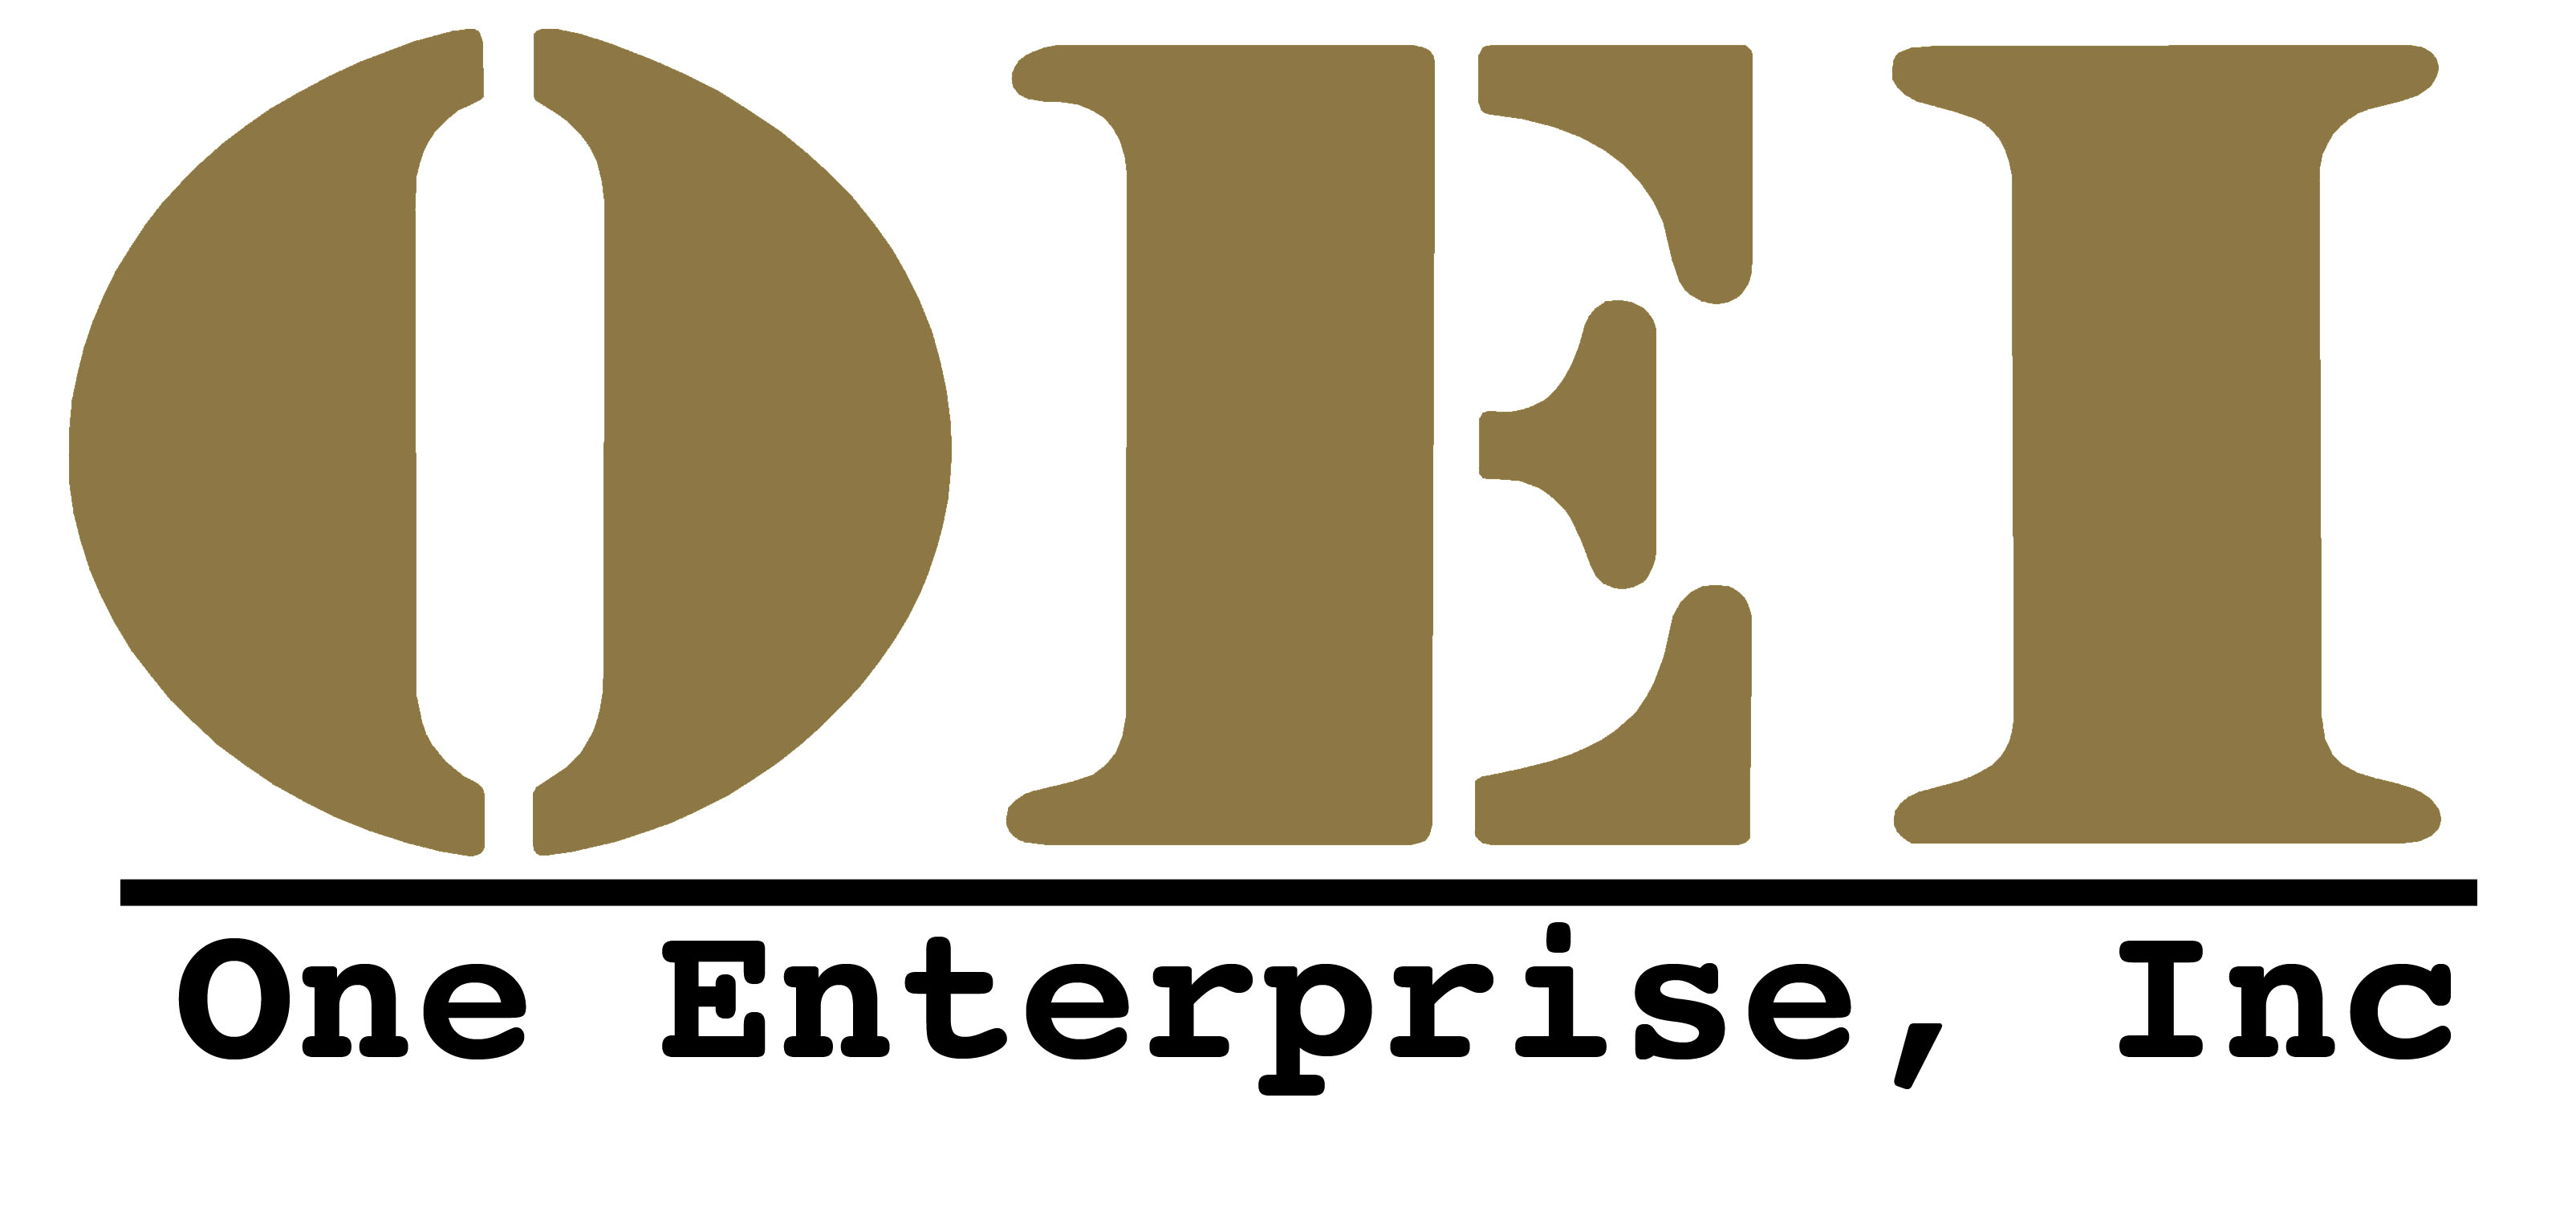 One Enterprise, Inc.